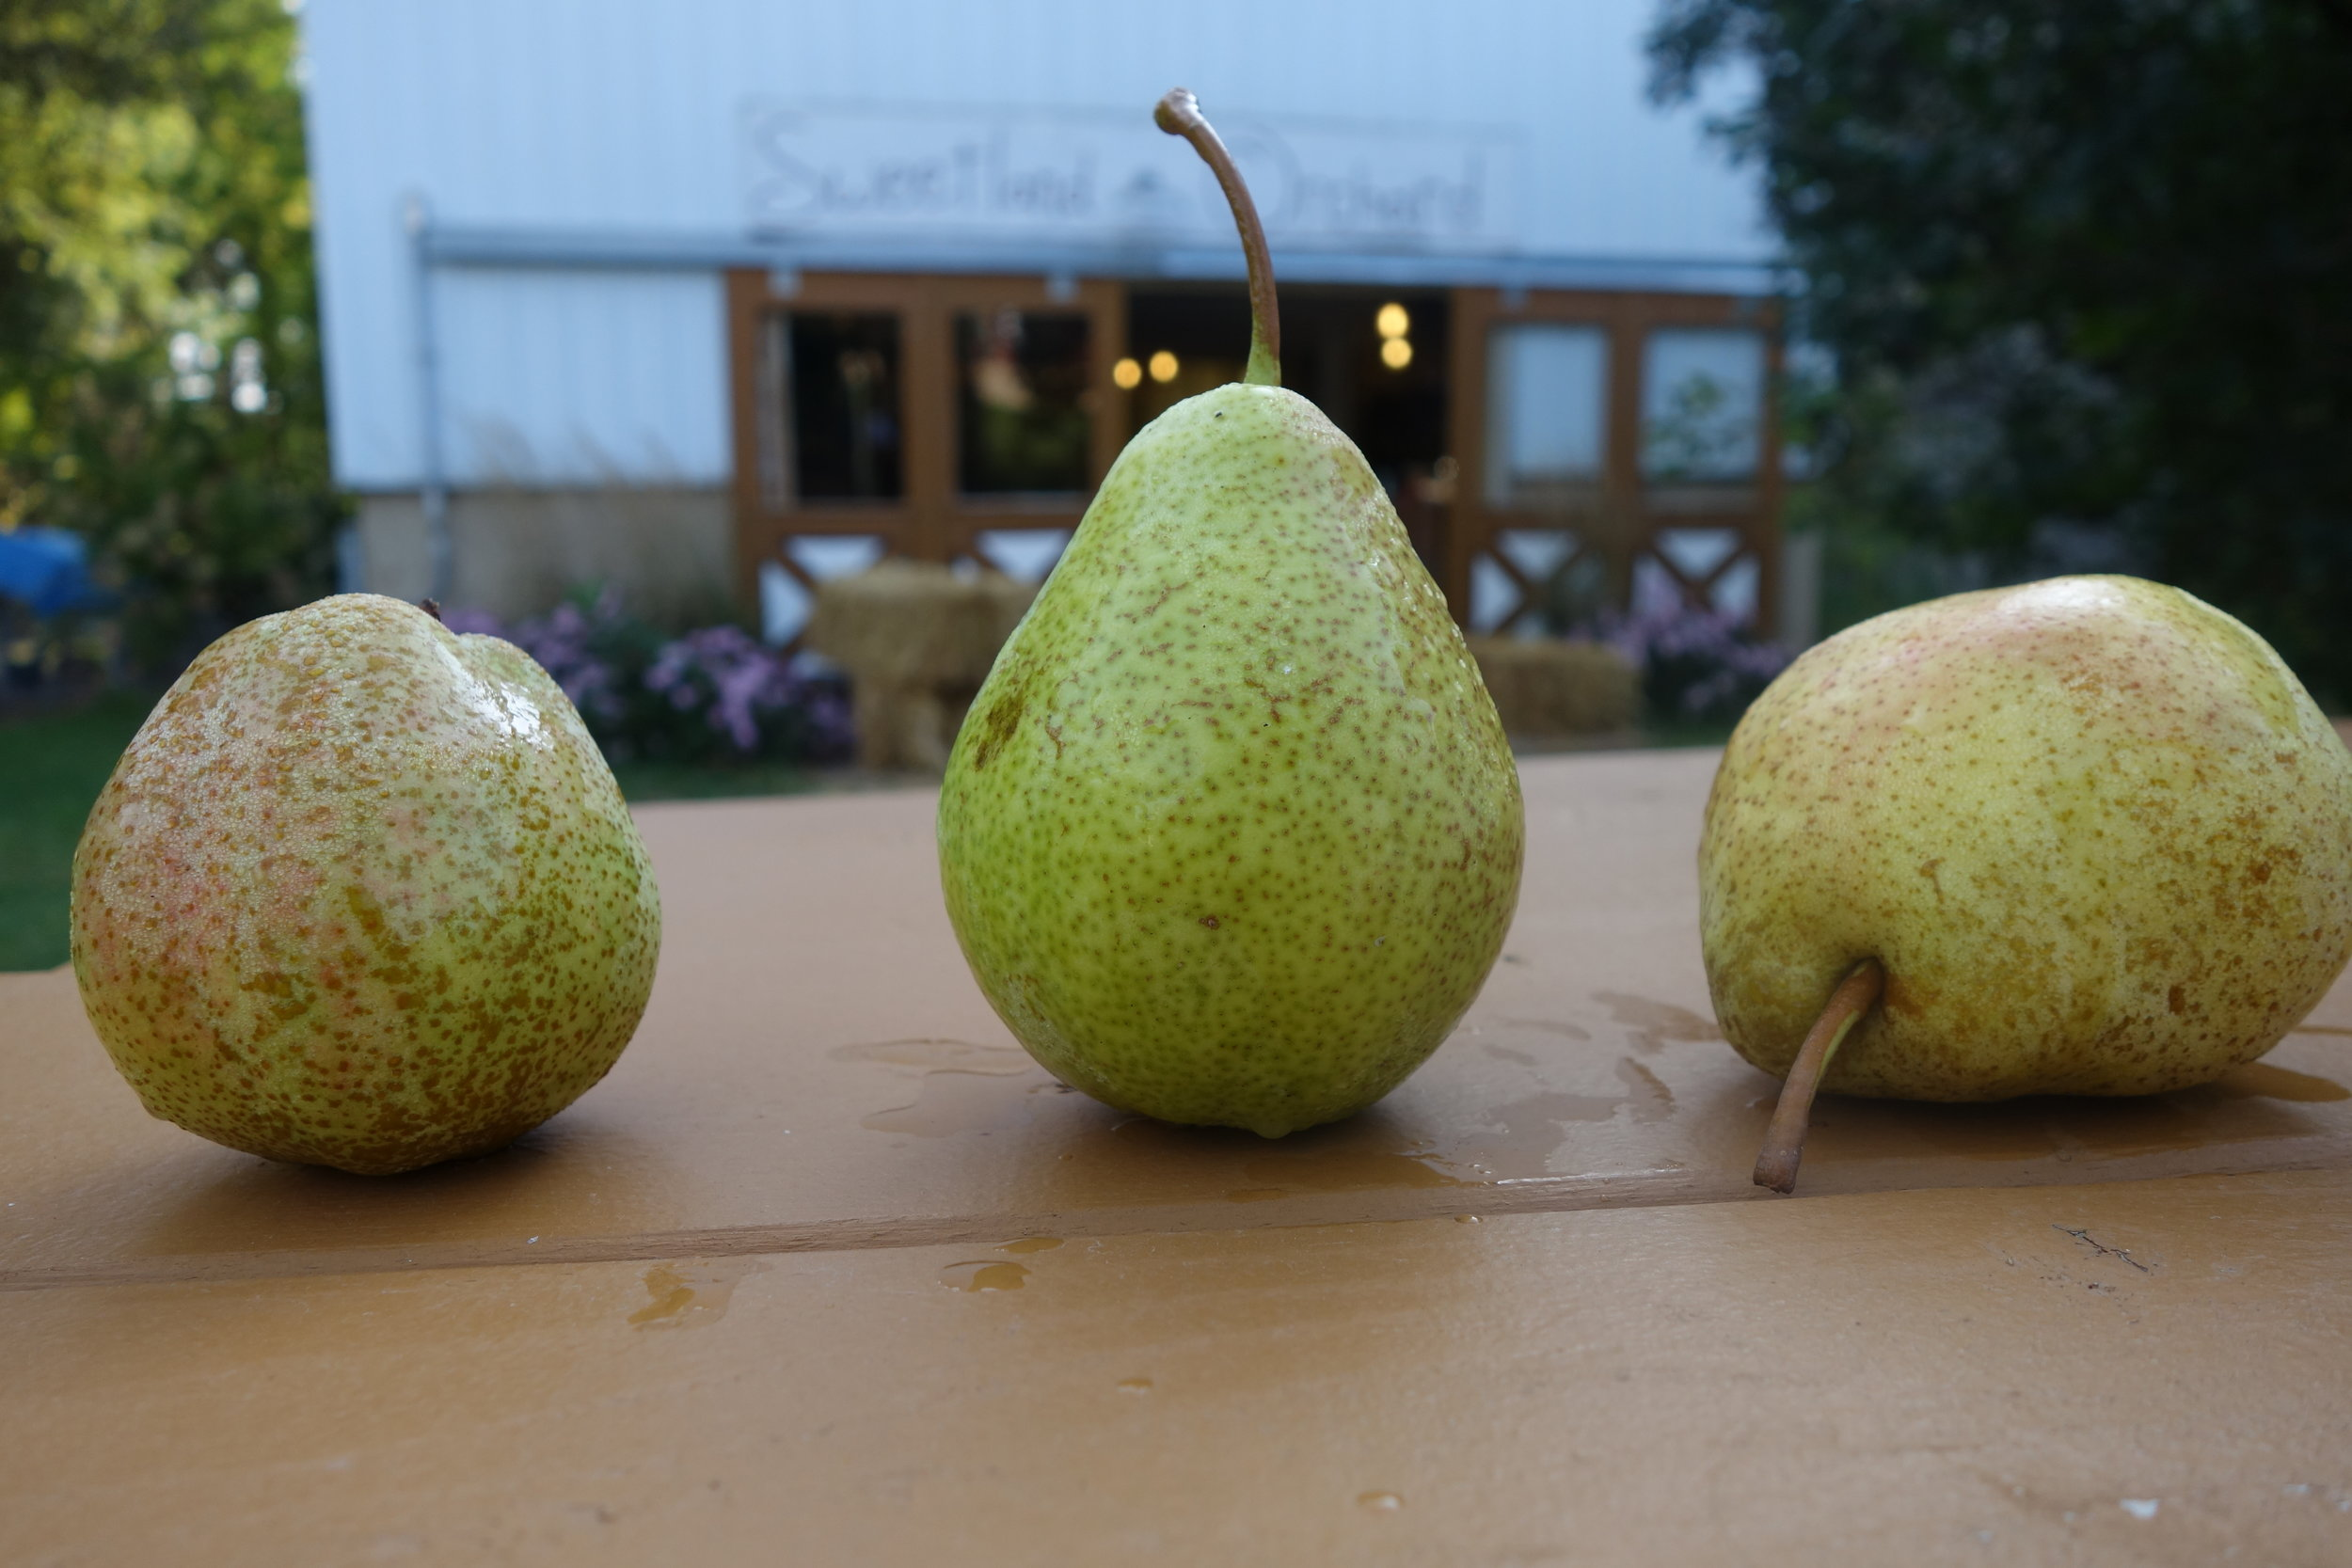 Patten, Luscious, and Jung pears.